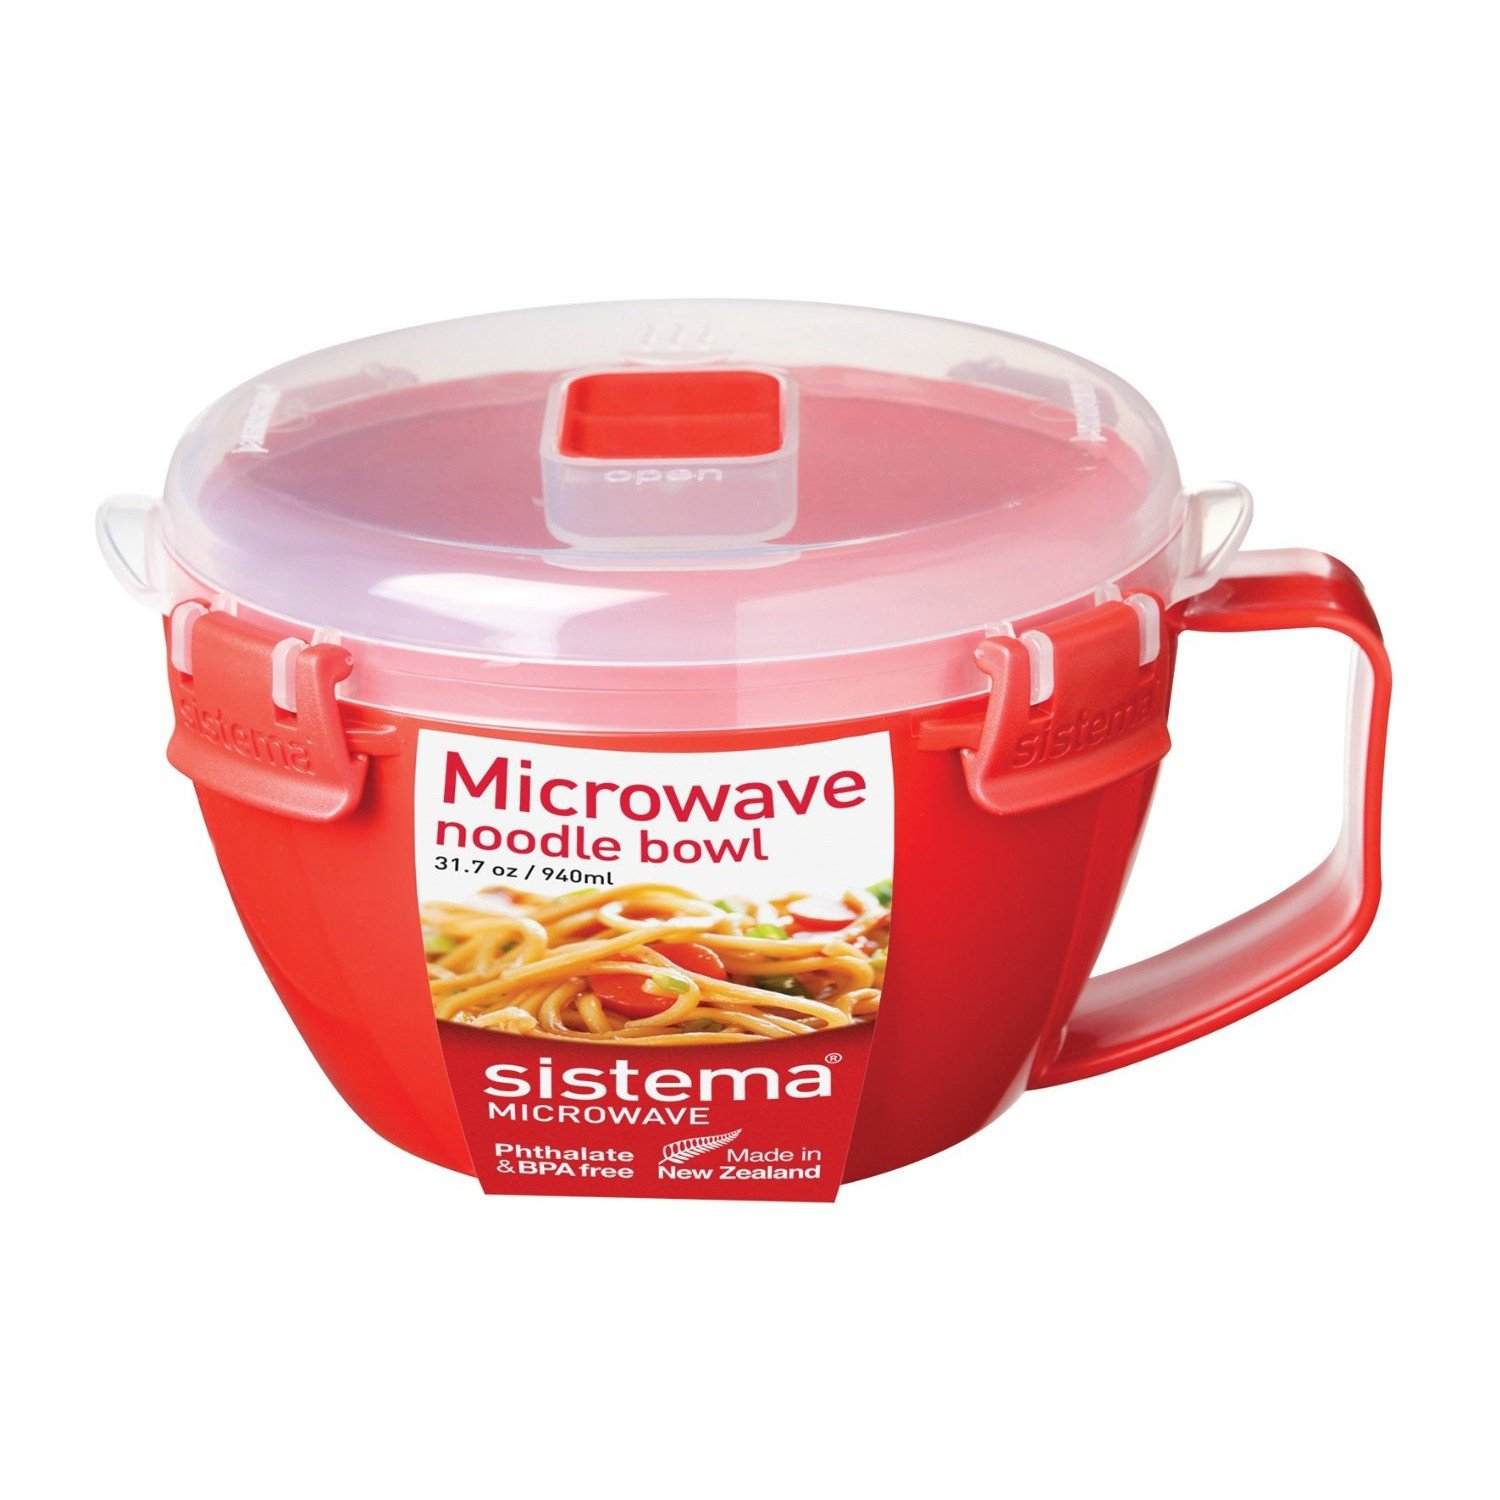 Sistema Microwave Storage Container - Microwave - Noodle Bowl USA SYNCHKG041460